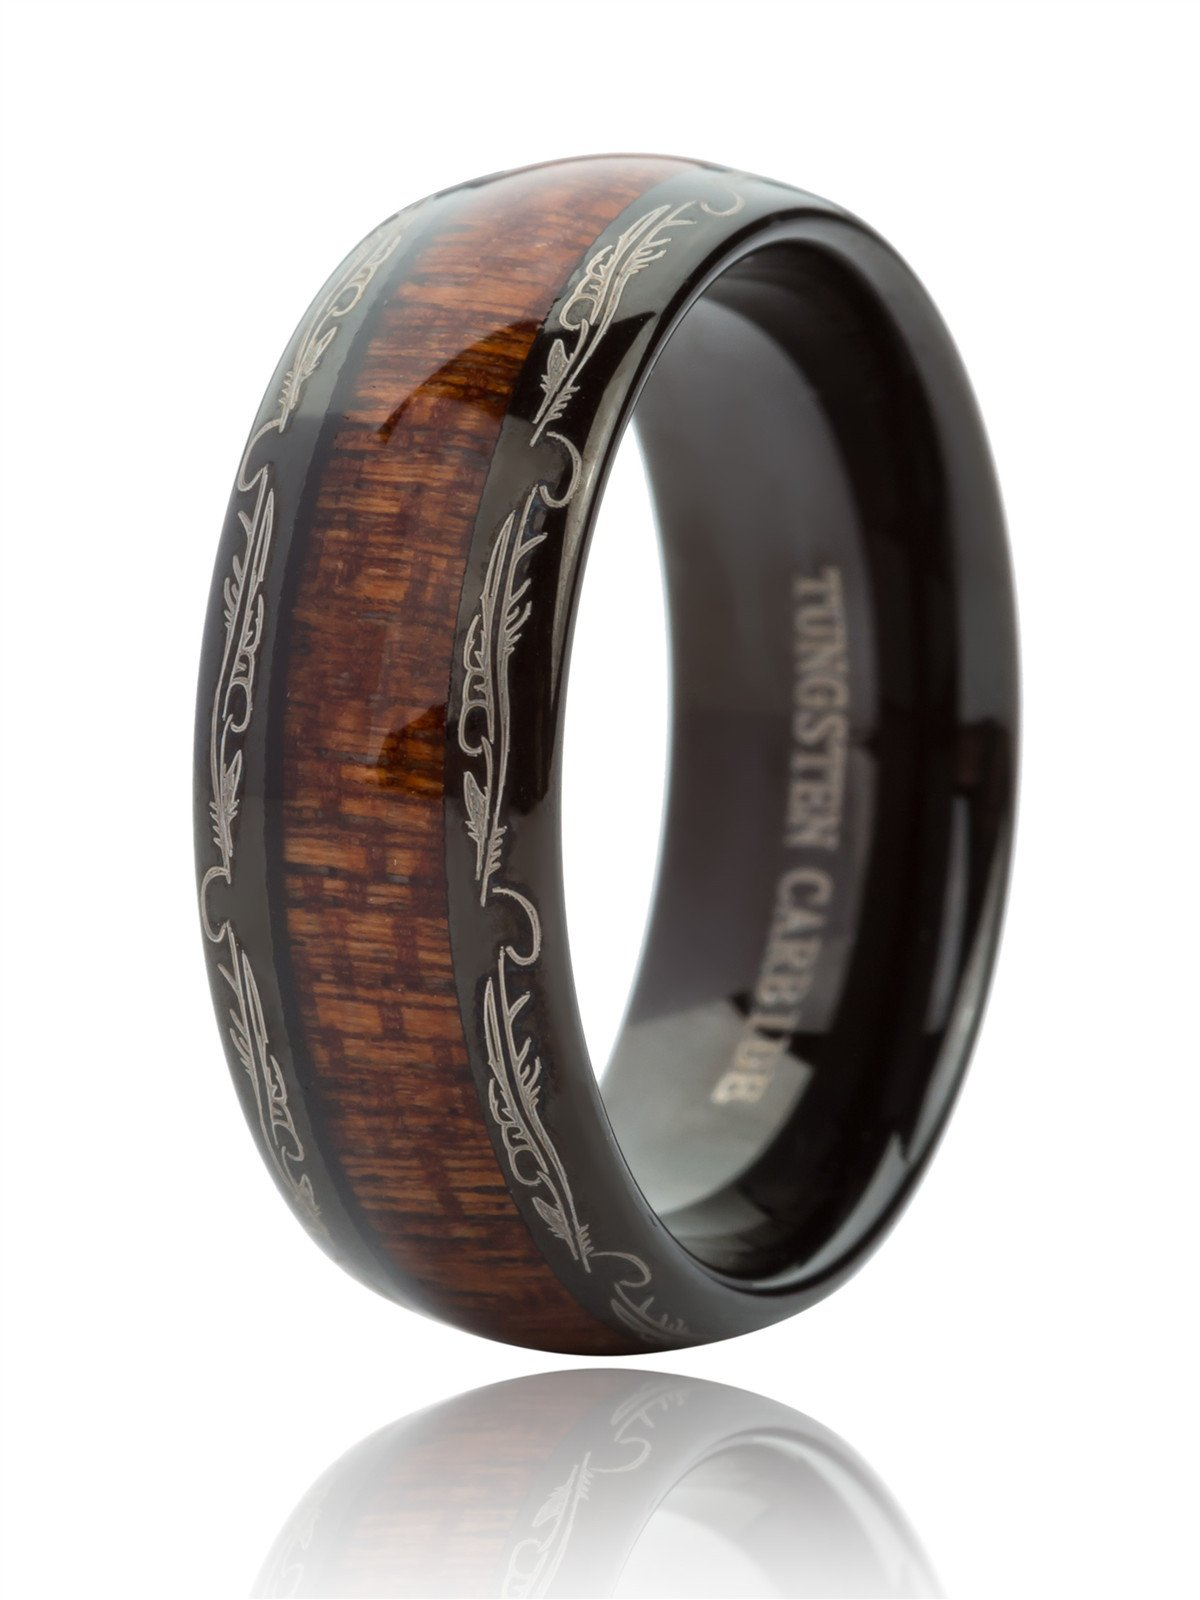 Just Lsy Mens Womens Nature 8mm Black Tungsten Carbide Ring Koa Wood Inlay Dome Edge Wedding Band Comfort Fit Size 11.5